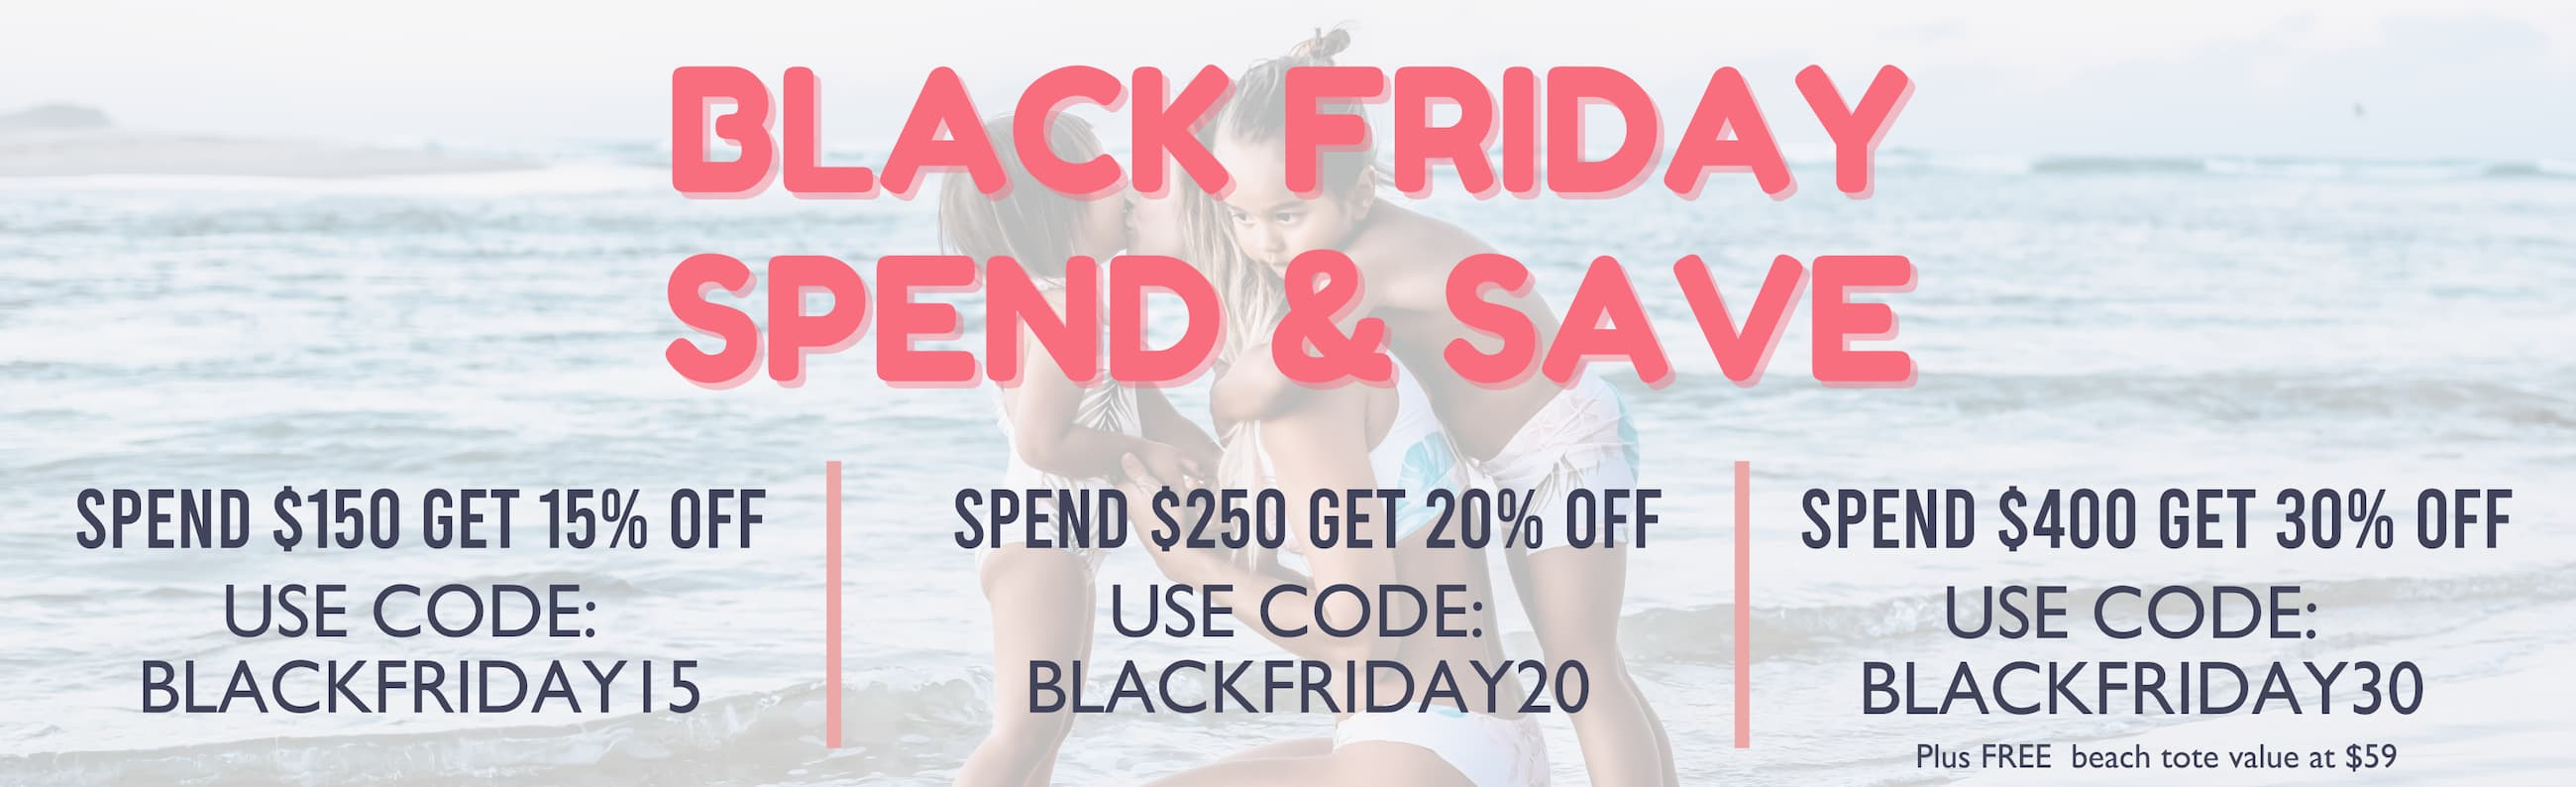 Check out our Black Friday deals!